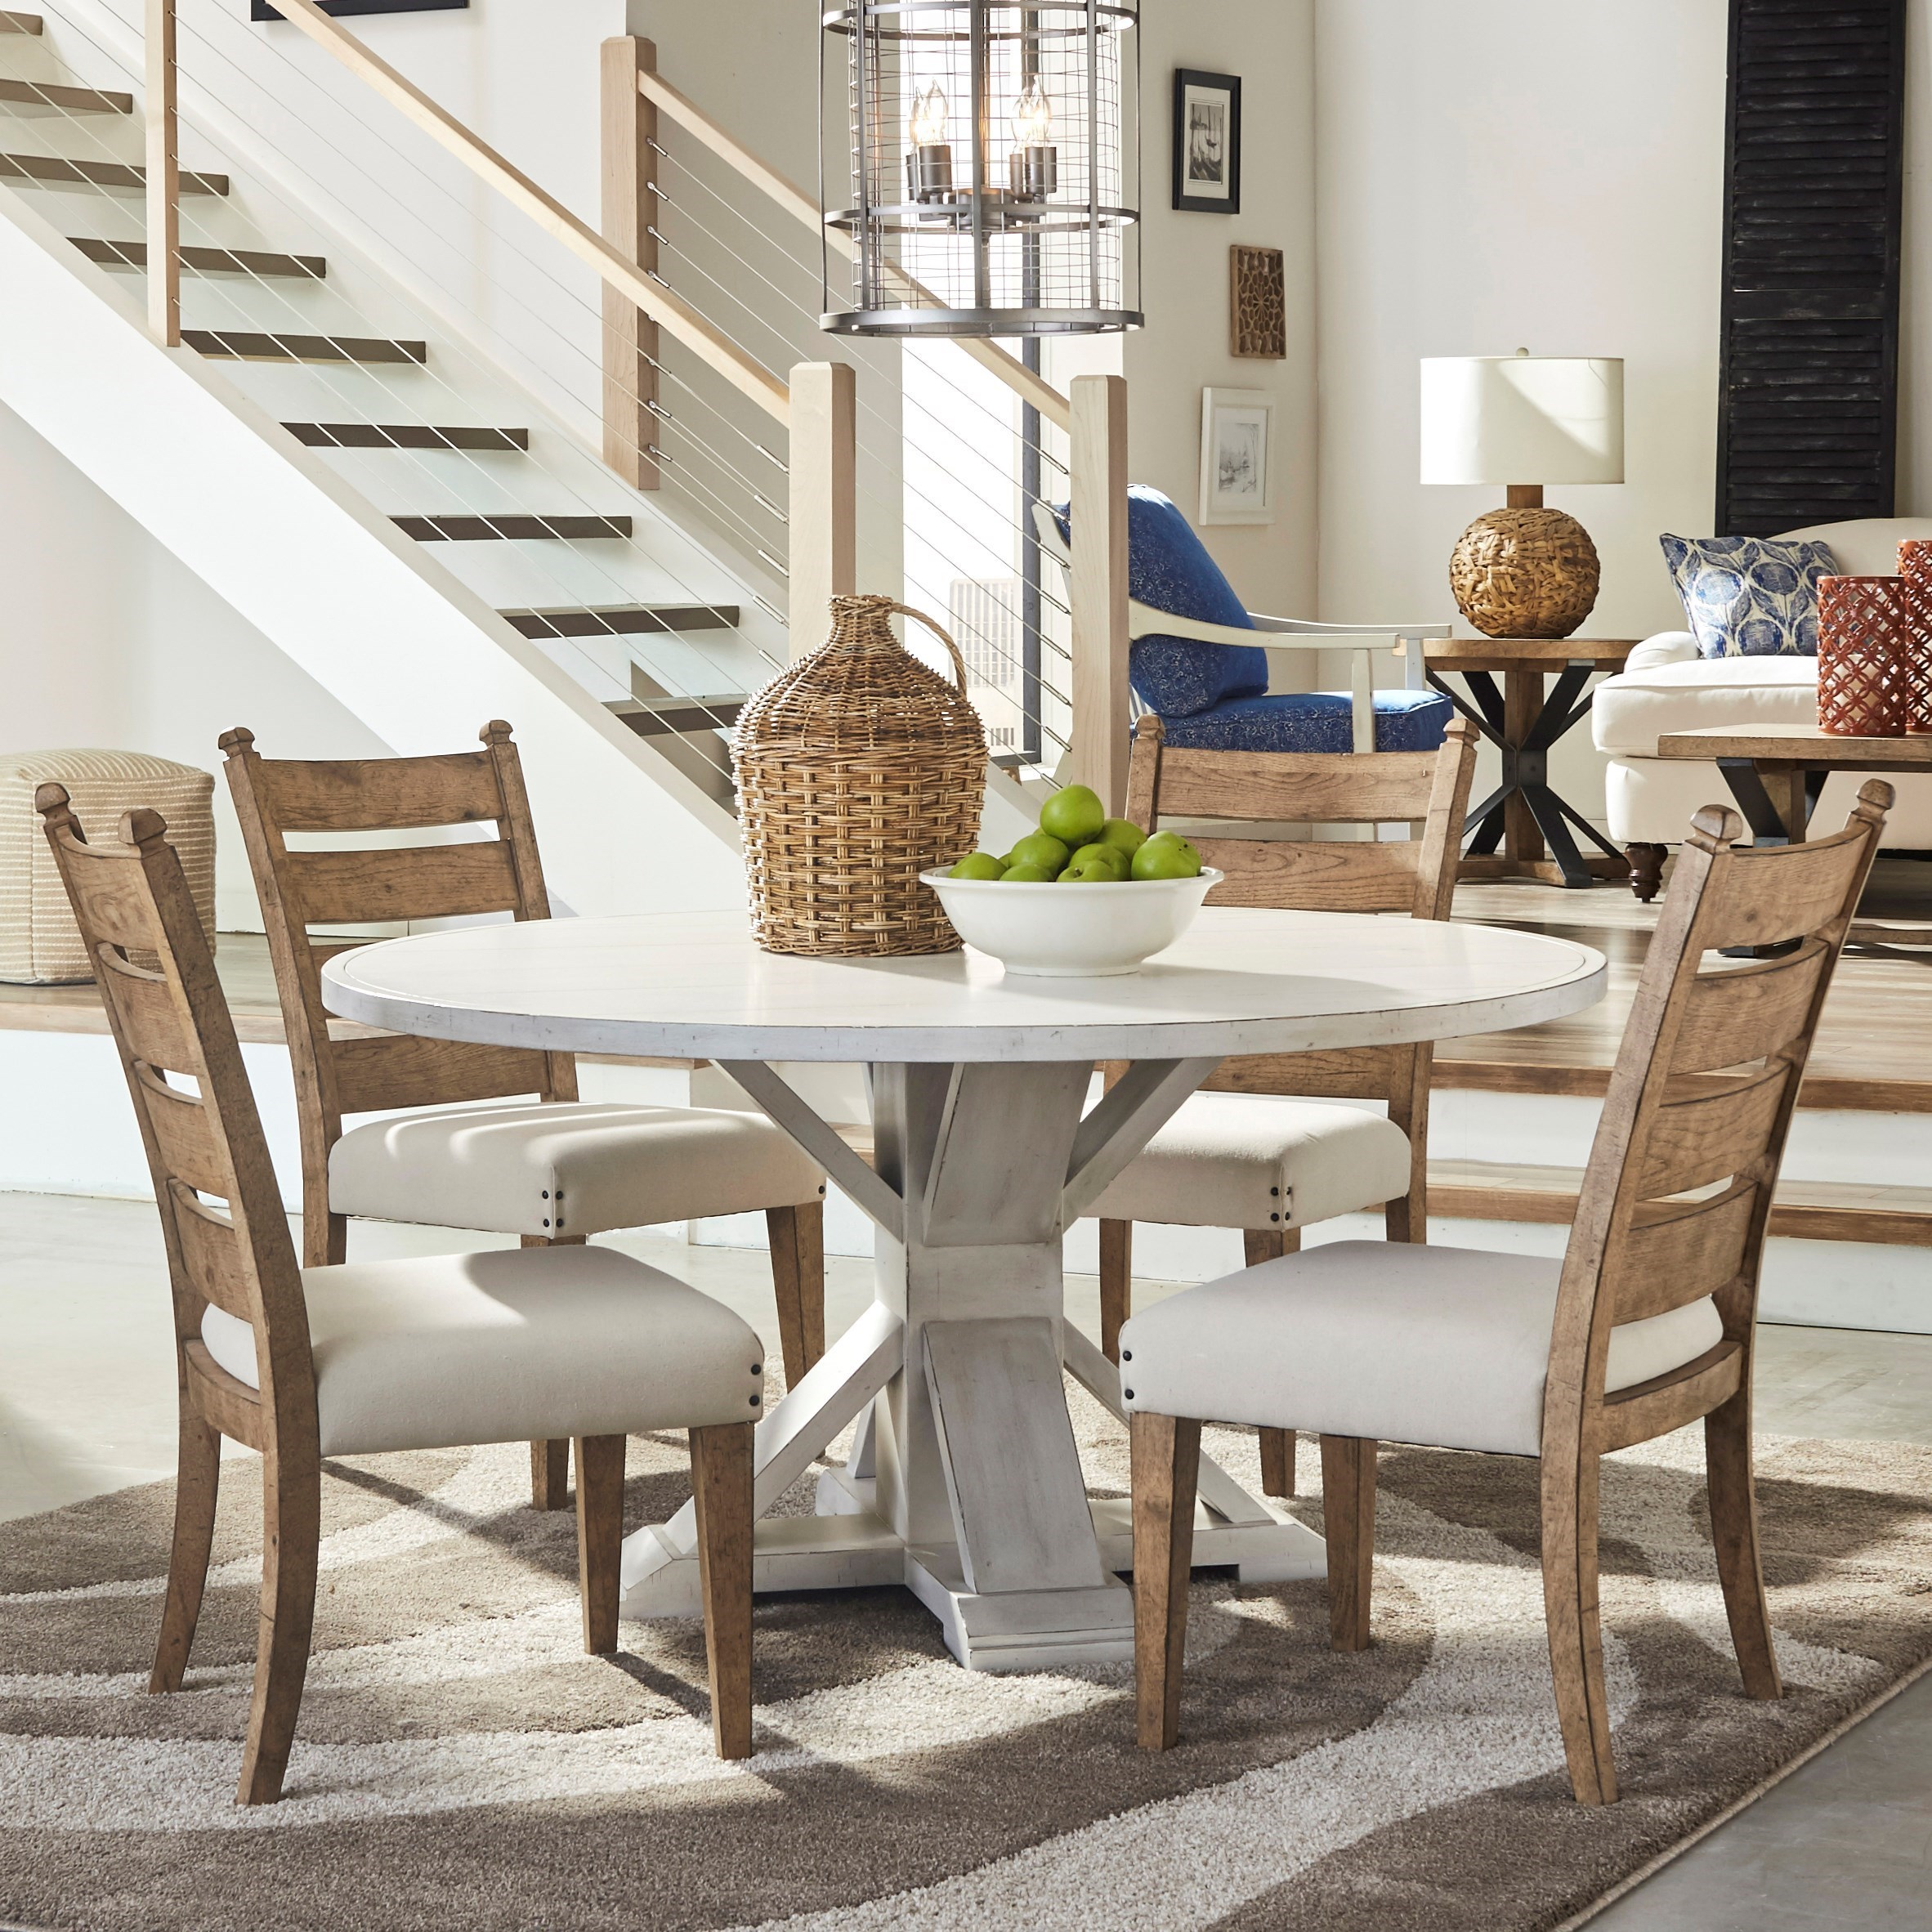 Coming Home 5 Pc Dining Set by Trisha Yearwood Home Collection by Klaussner at Powell's Furniture and Mattress